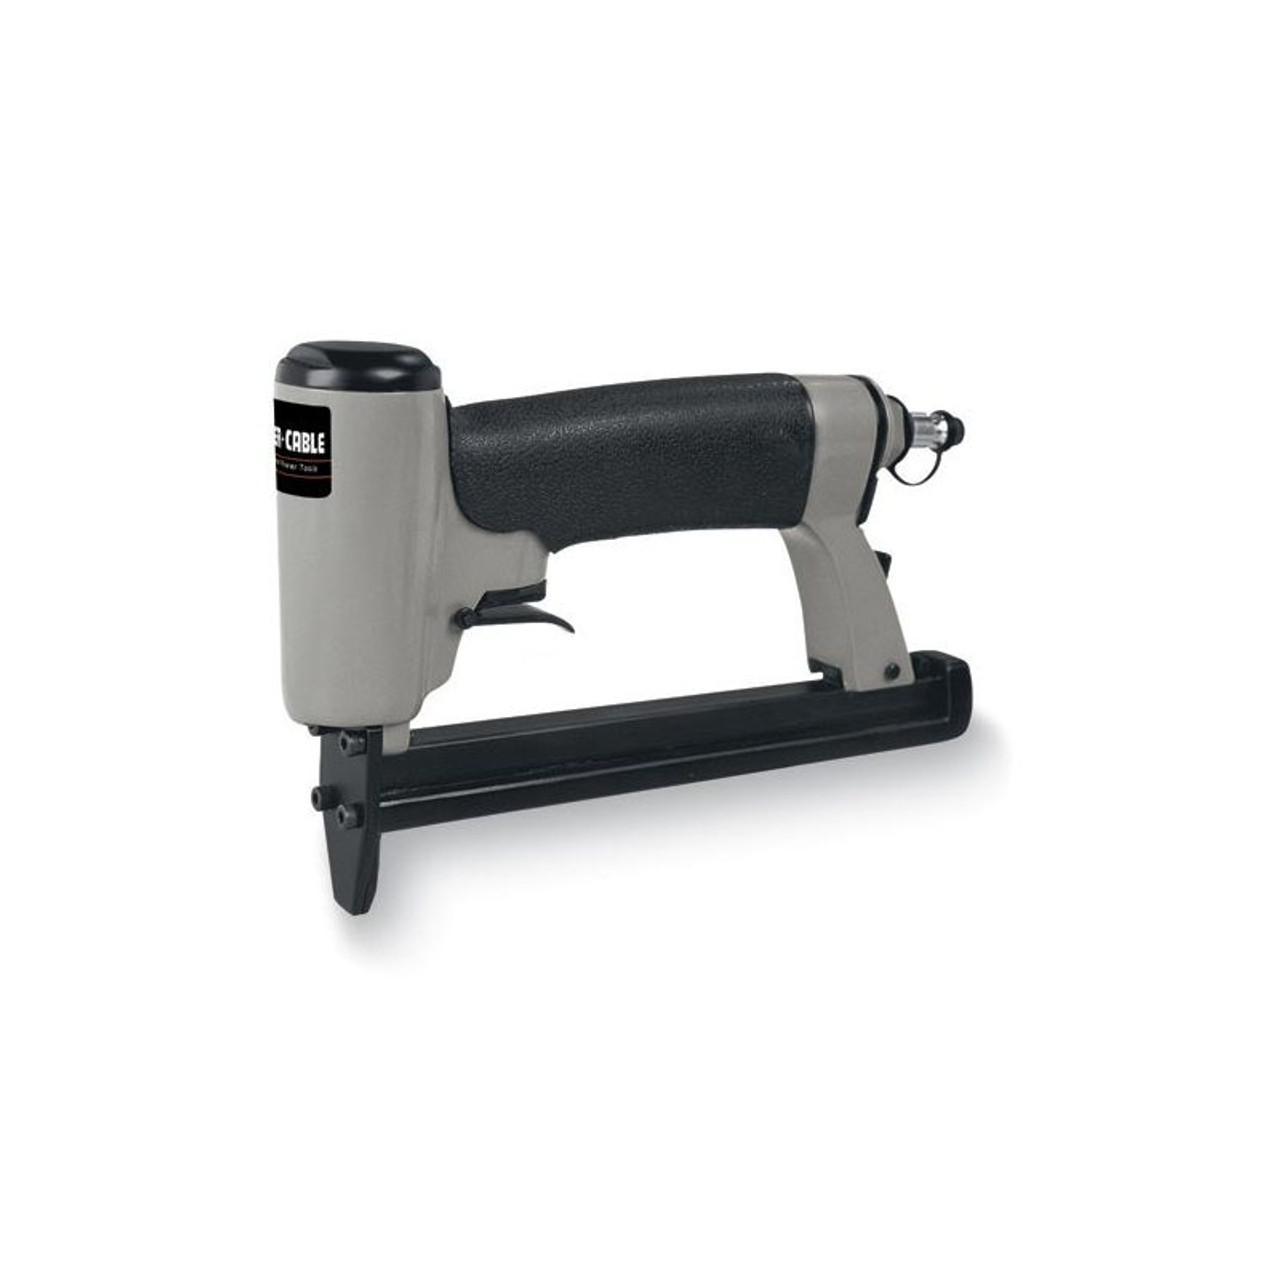 22 Gauge 3 8 Upholstery Stapler Pneumatic No Us58t2 Whitehead